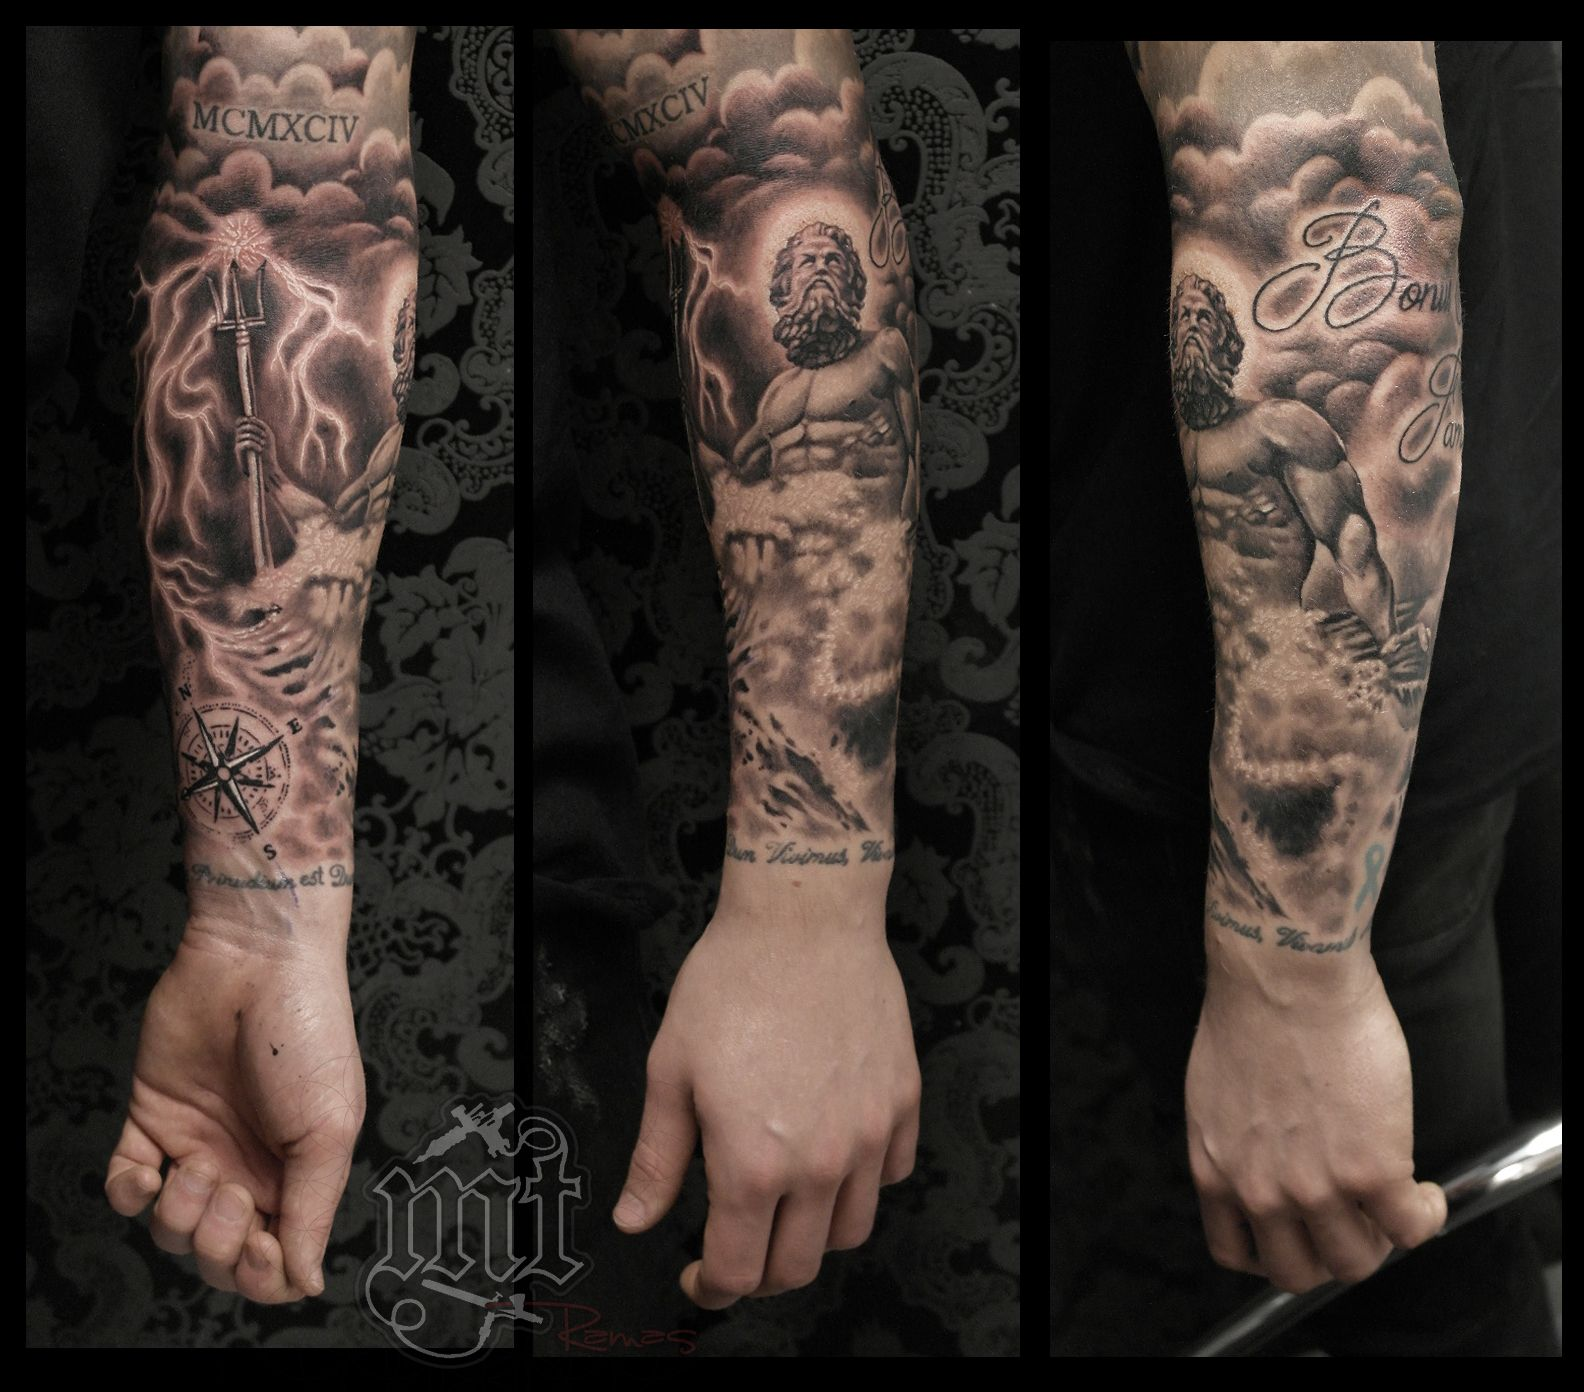 Poseidon Tatto Poseidon Tattoo Tattoos Et Sleeve Tattoos